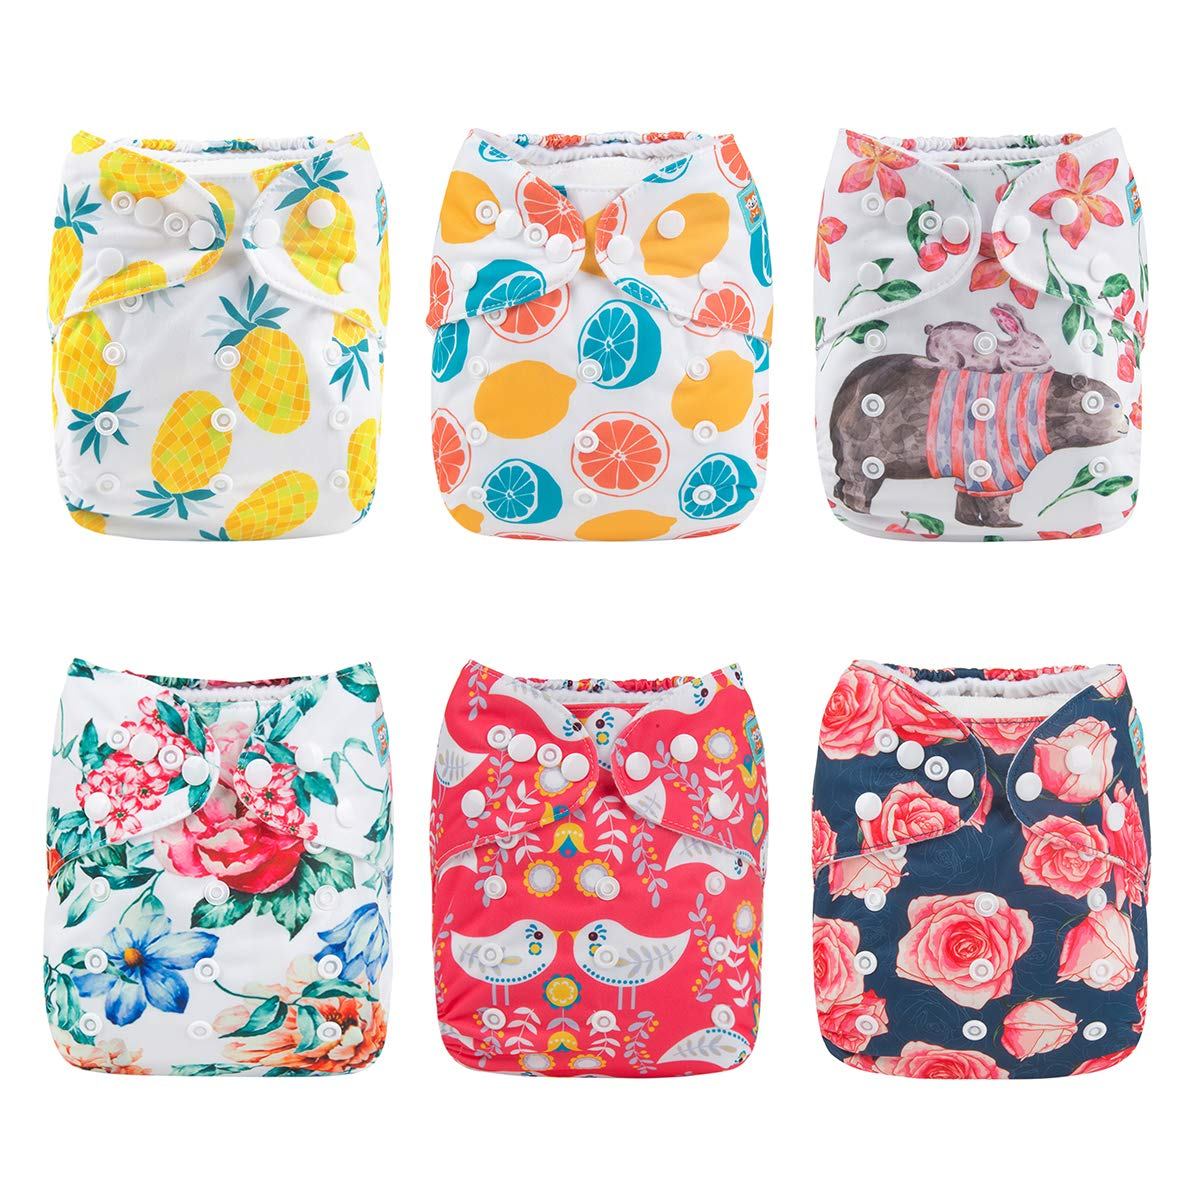 Reusable Baby Nappies Diapers Cloth Insert Adjustable Washable Pocket Newborn RU